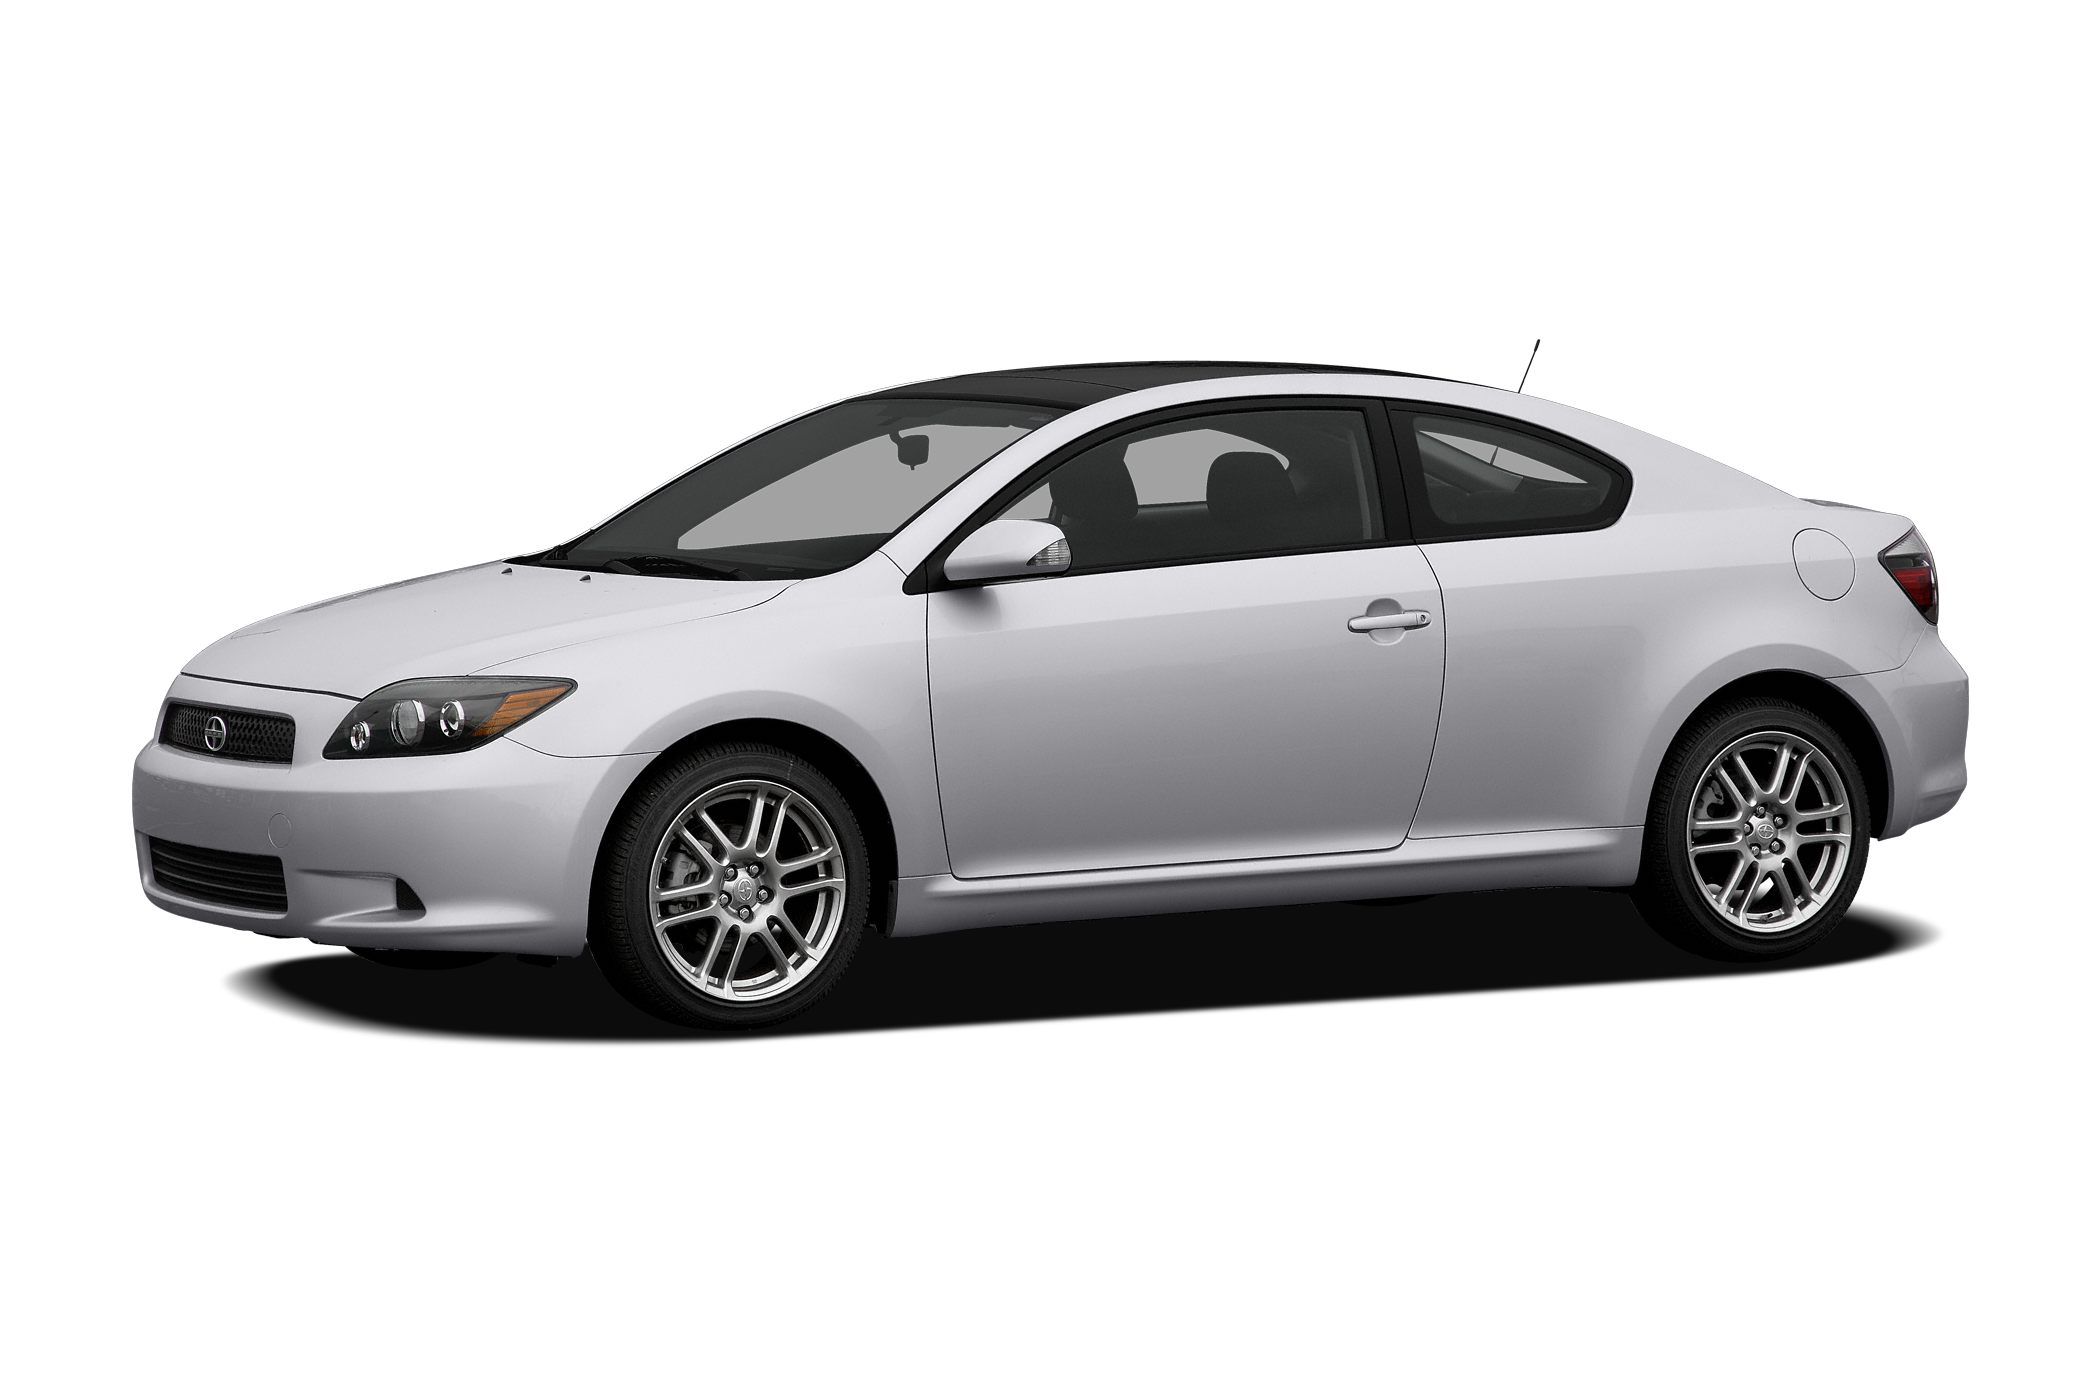 2008 Scion TC Coupe for sale in Greer for $7,995 with 144,479 miles.